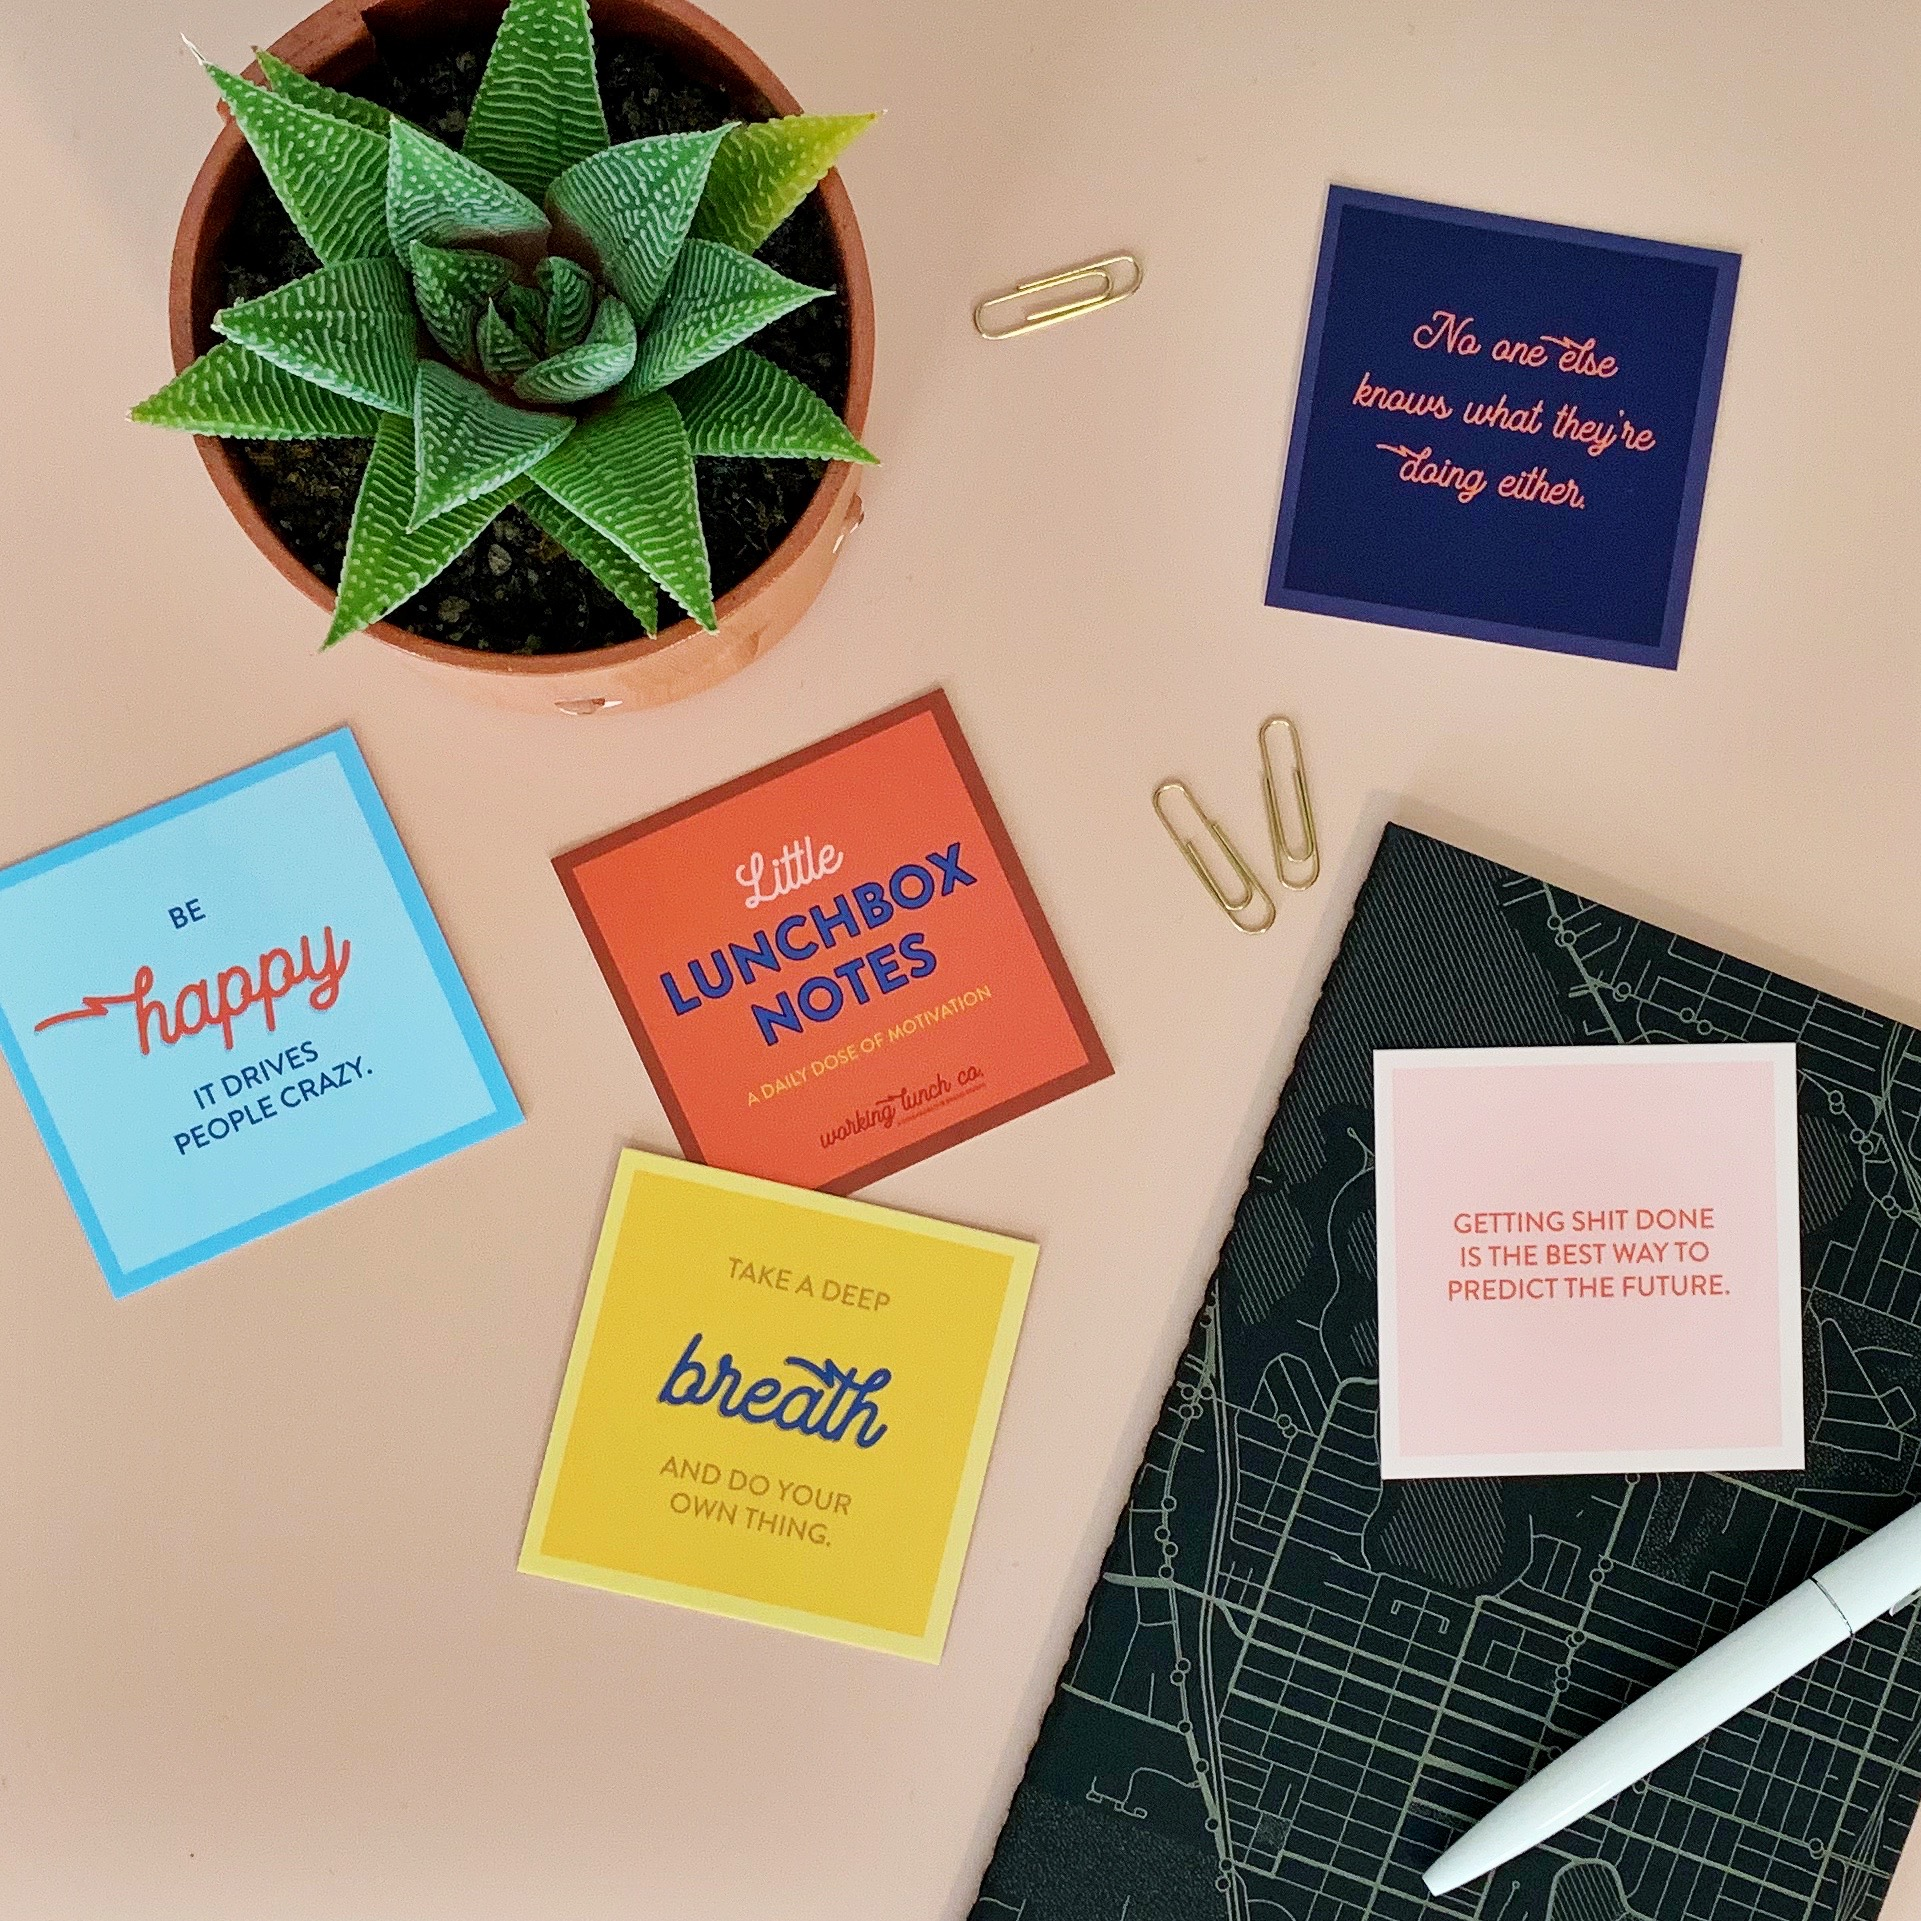 New! Little Lunchbox Notes - Calling all go-getters, boss babes, and weekend warriors: get your #mondaymotivation IRL! Our Little Lunchbox Notes feature 24 uniquely designed inspirational messages to keep, share, or gift.